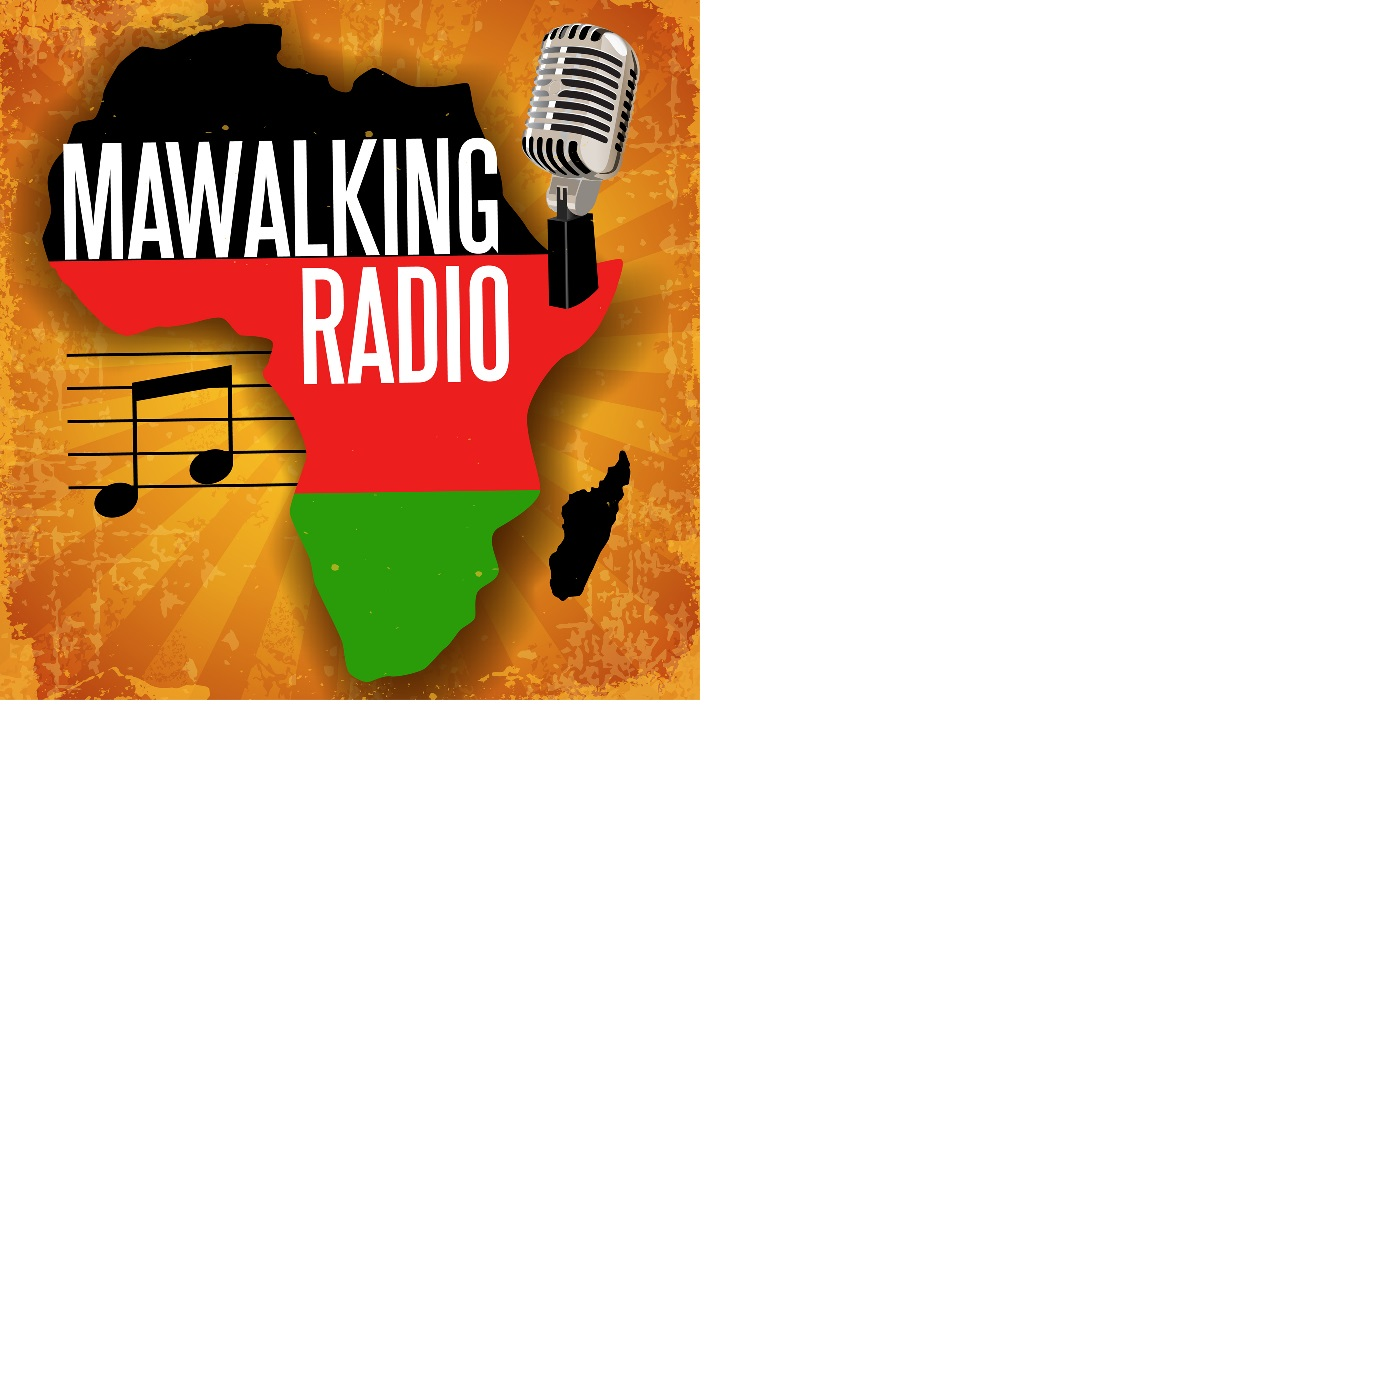 Mawalking Radio